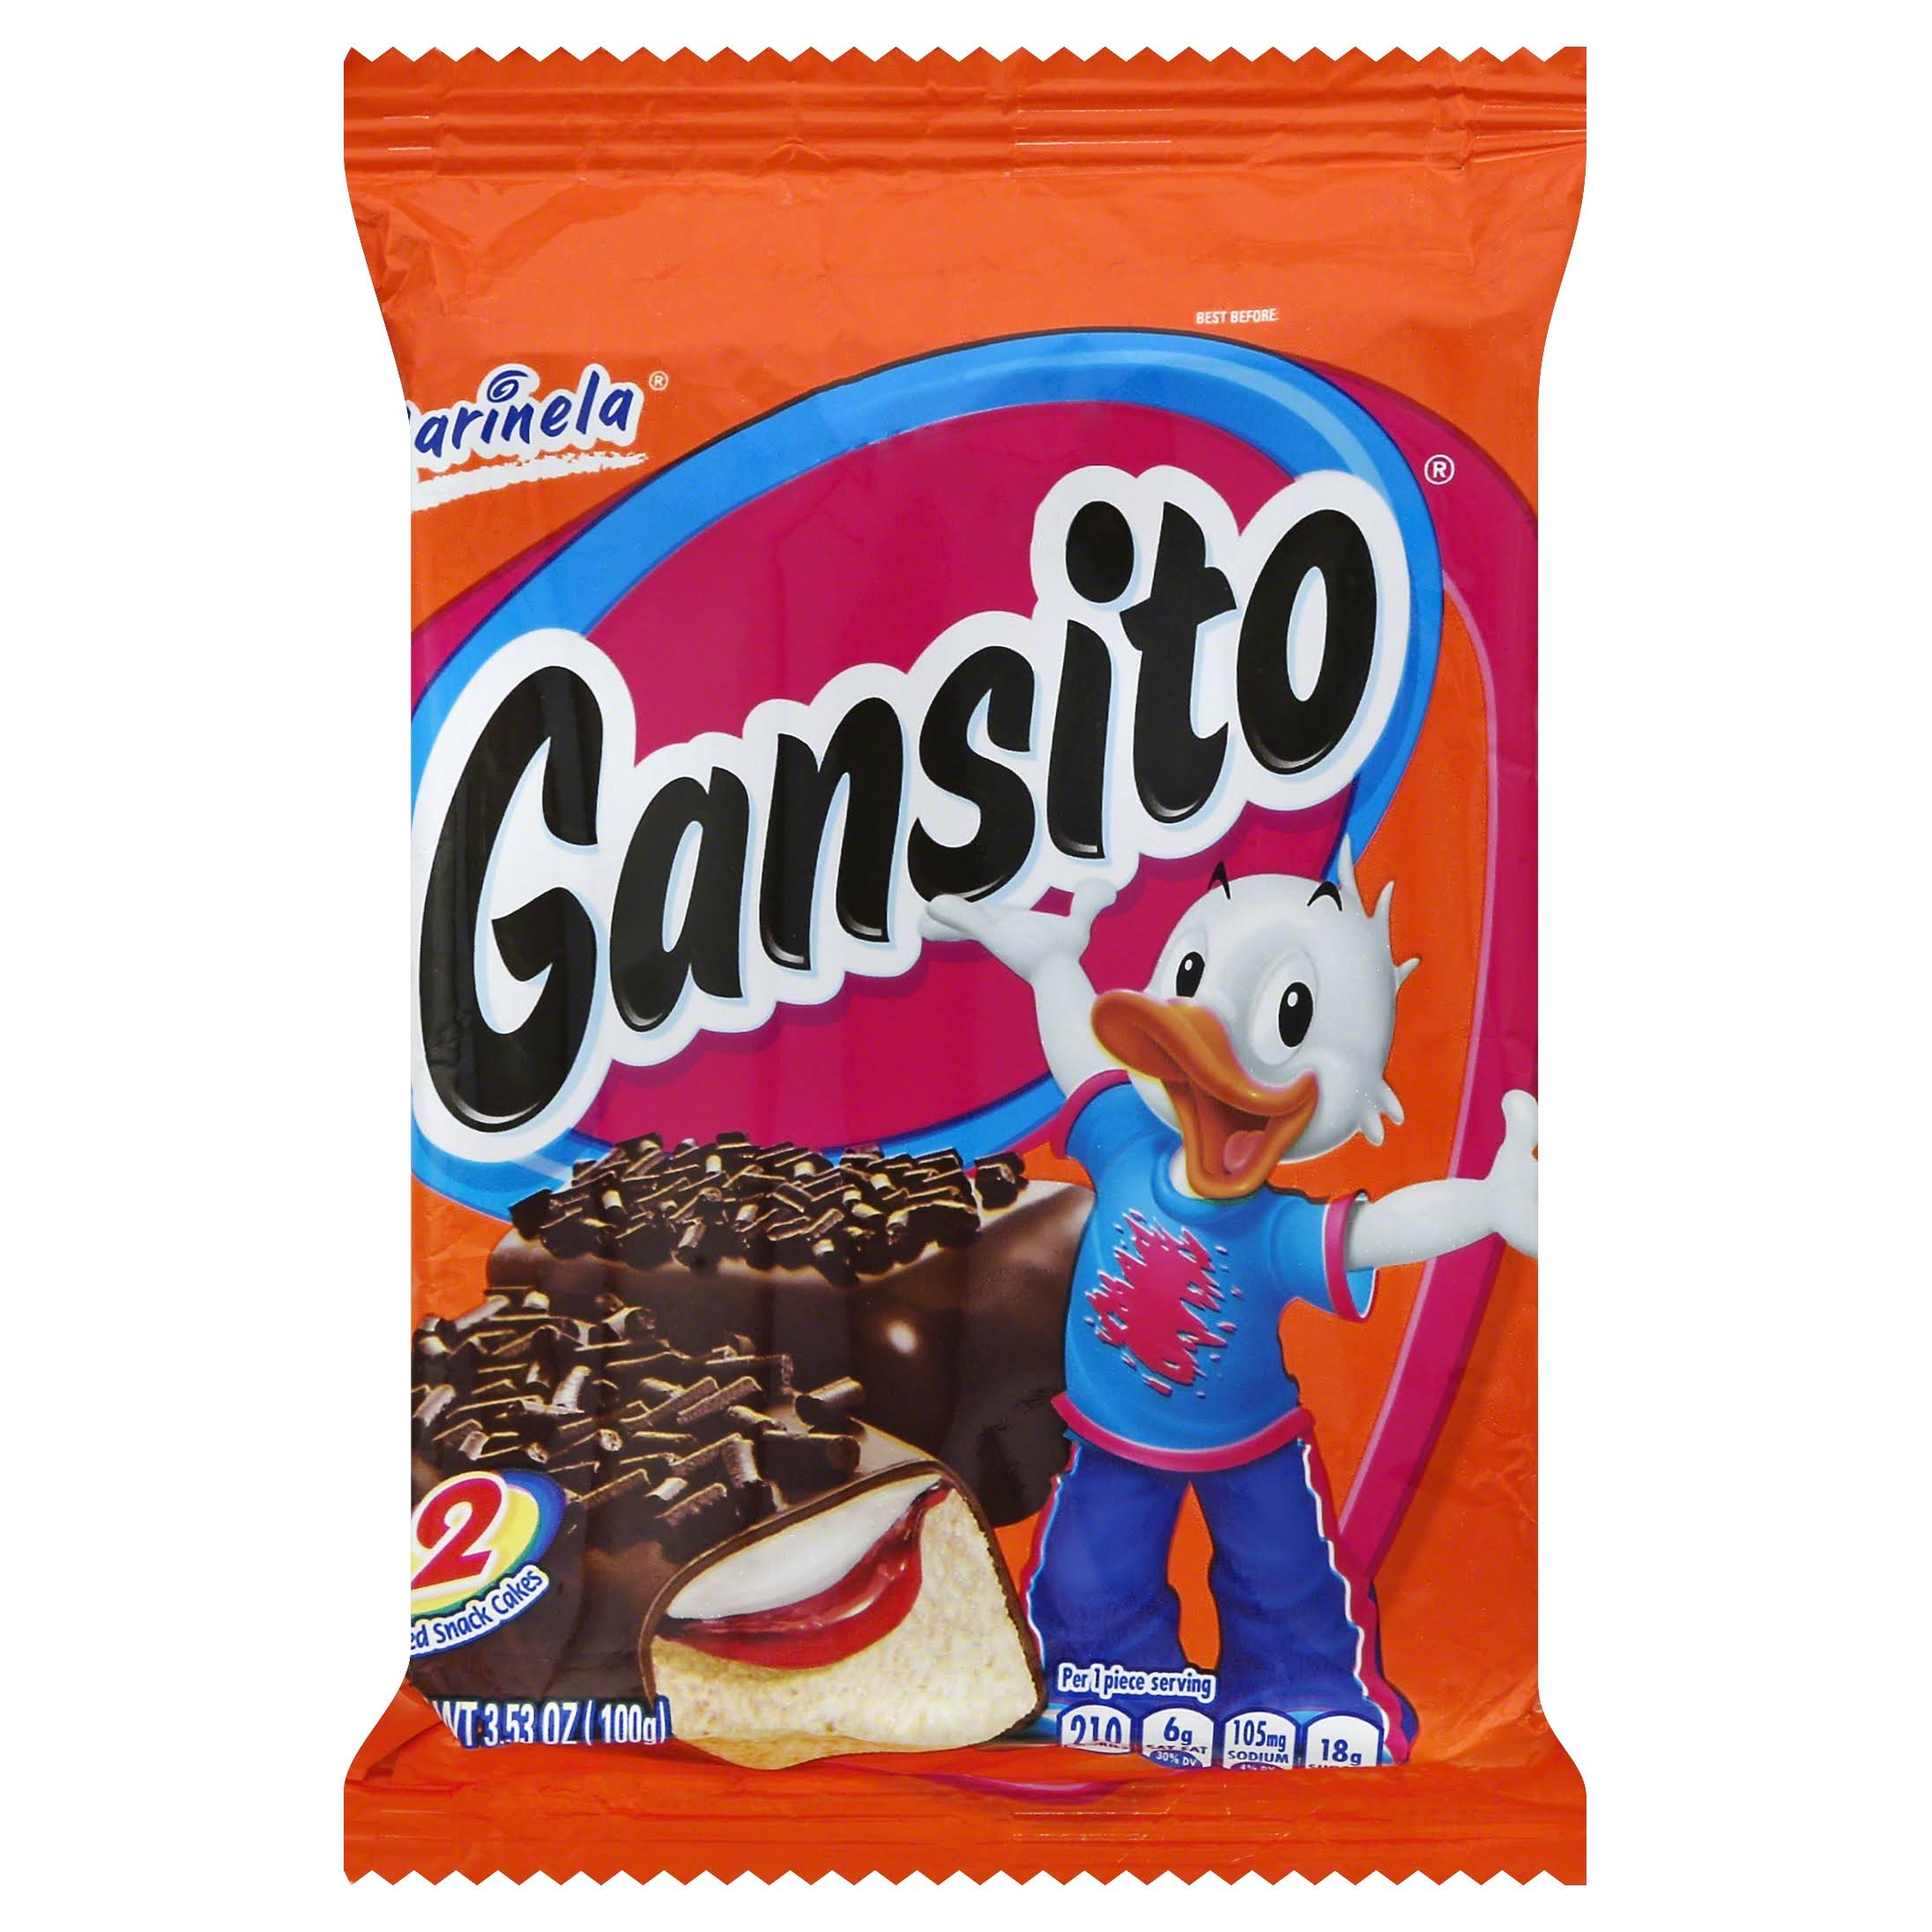 Marinela Gansito Snack Cakes - 3.5oz